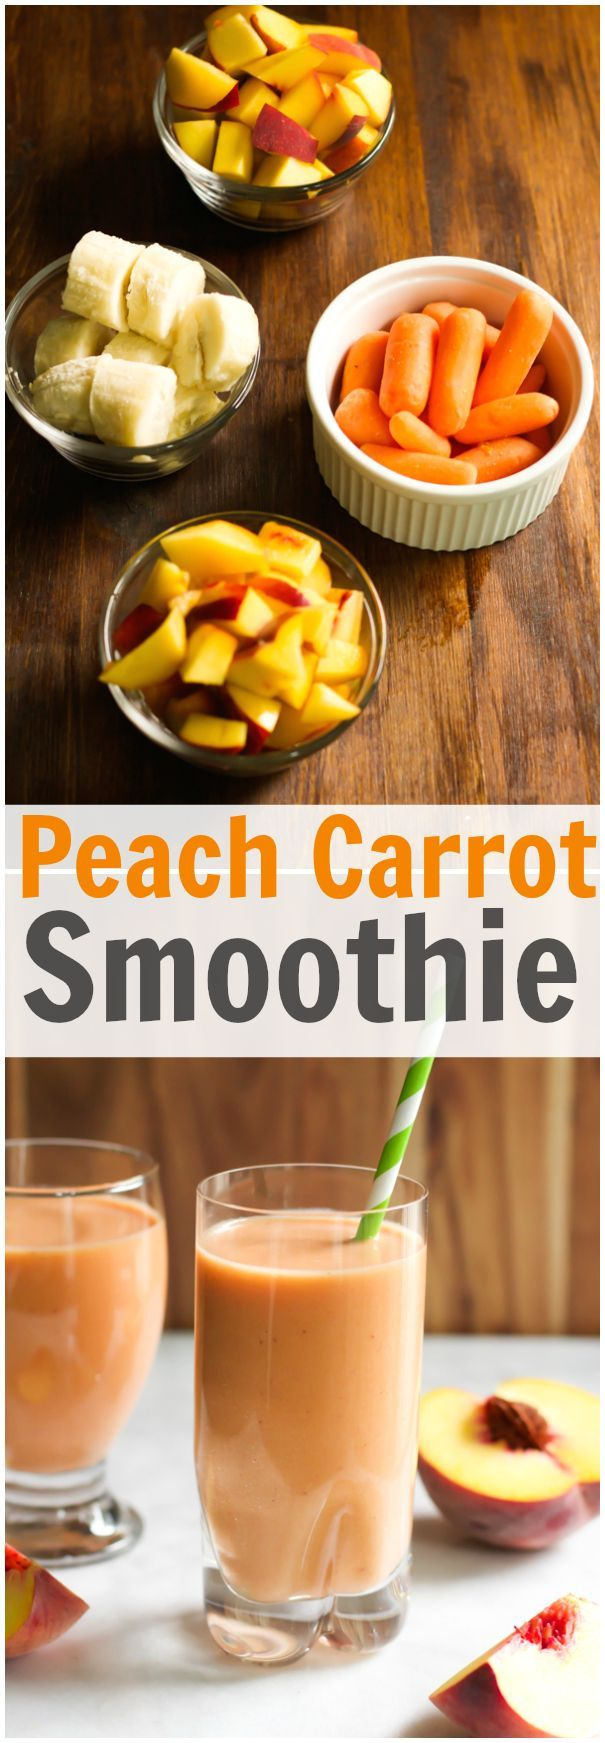 Peach Carrot Smoothie #dairyfreesmoothie